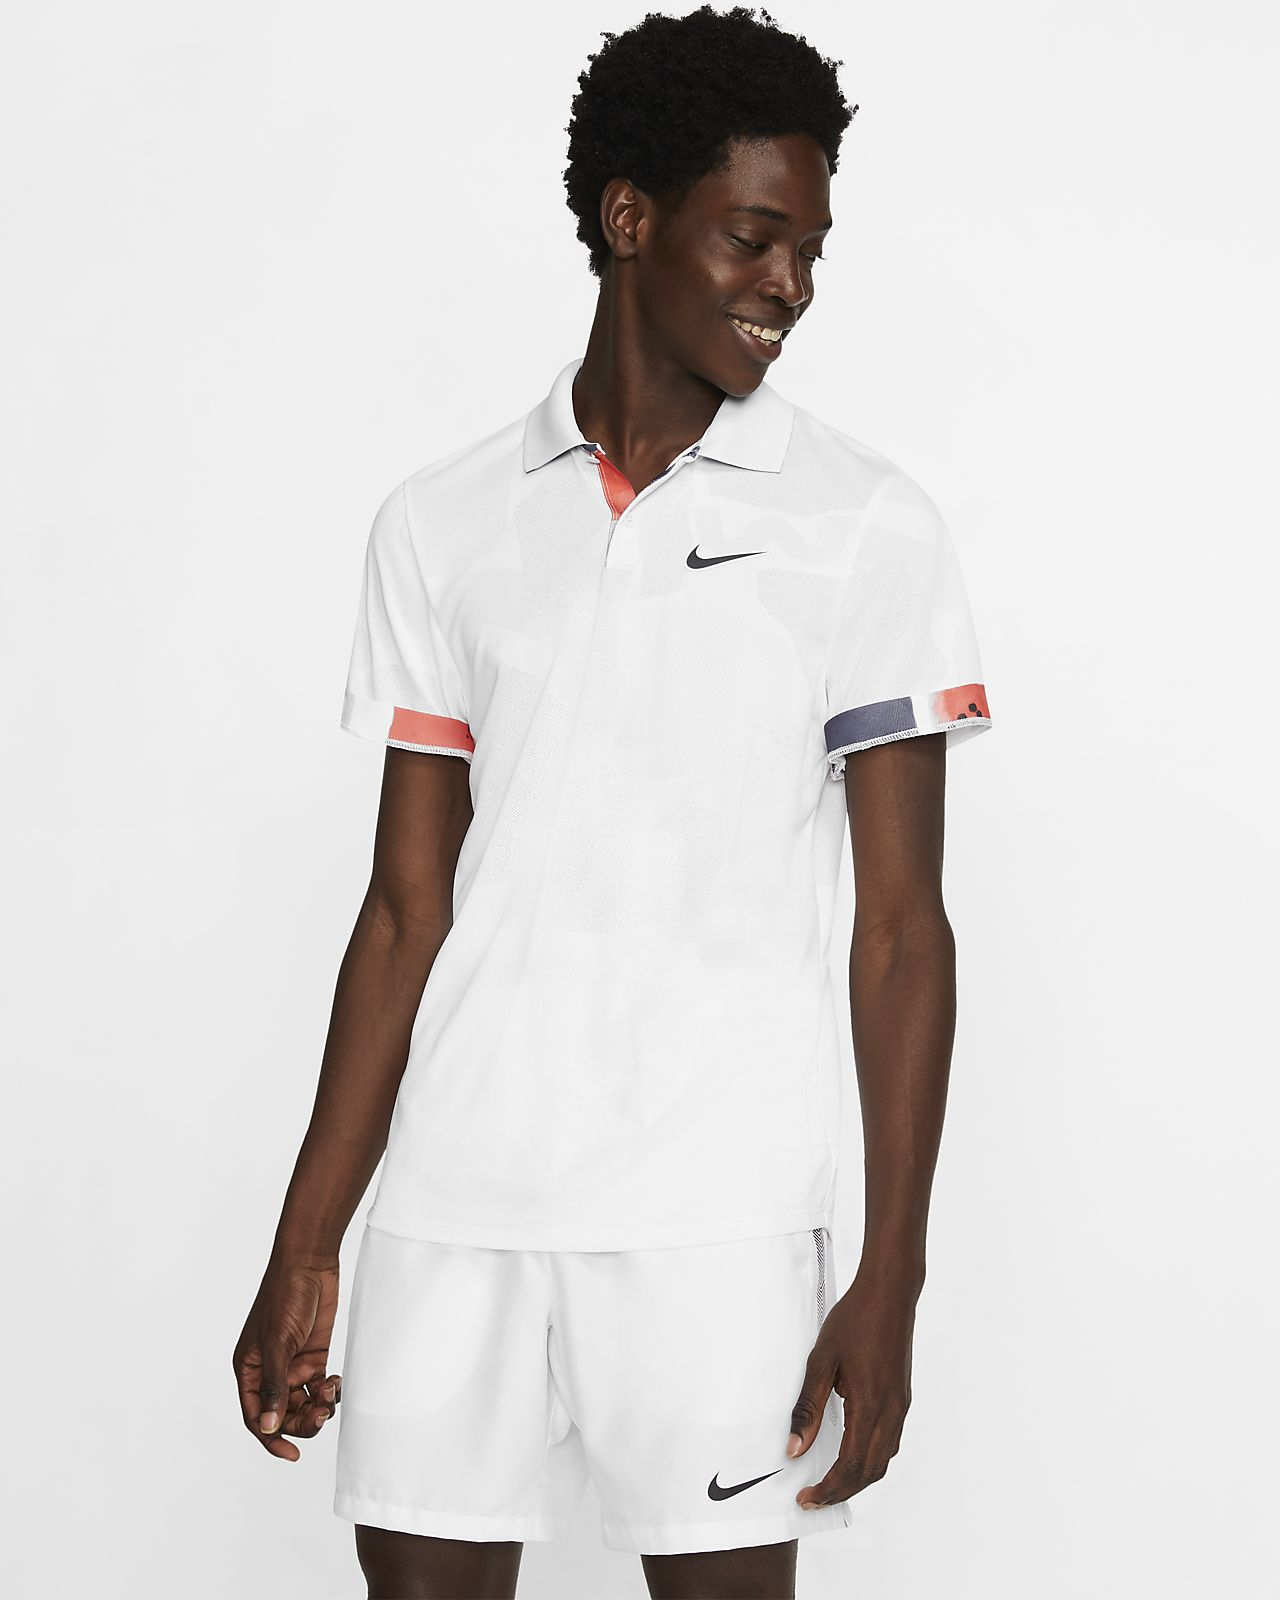 NikeCourt Breathe Advantage Men's Tennis Polo